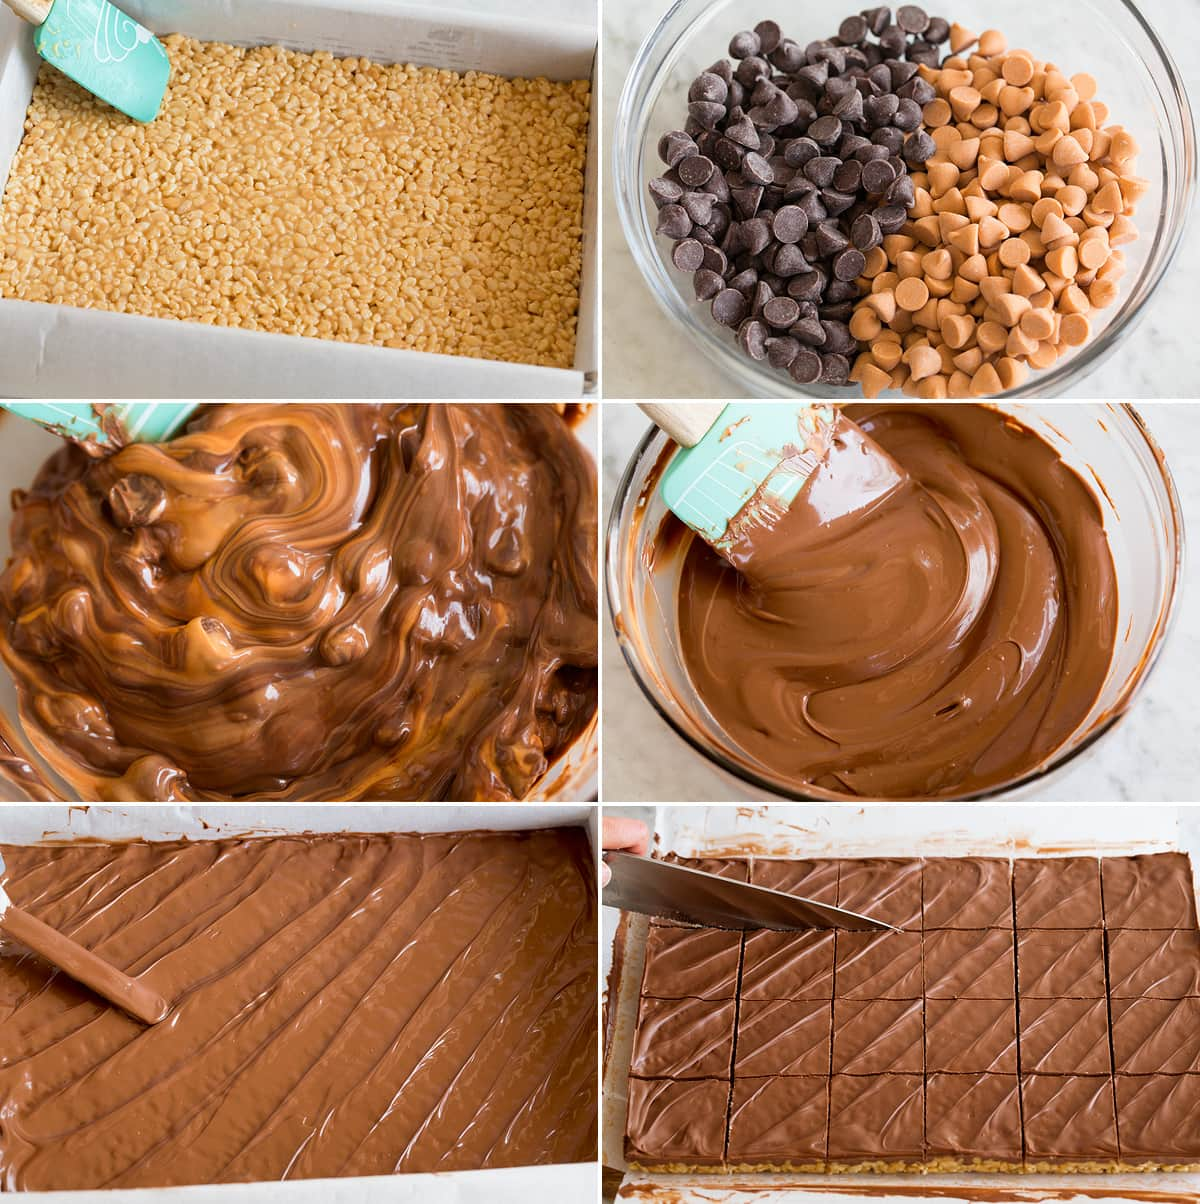 Collage of six images showing steps to spreading scotcheroo mixture into pan, melting chocolate and spreading over mixture in pan.